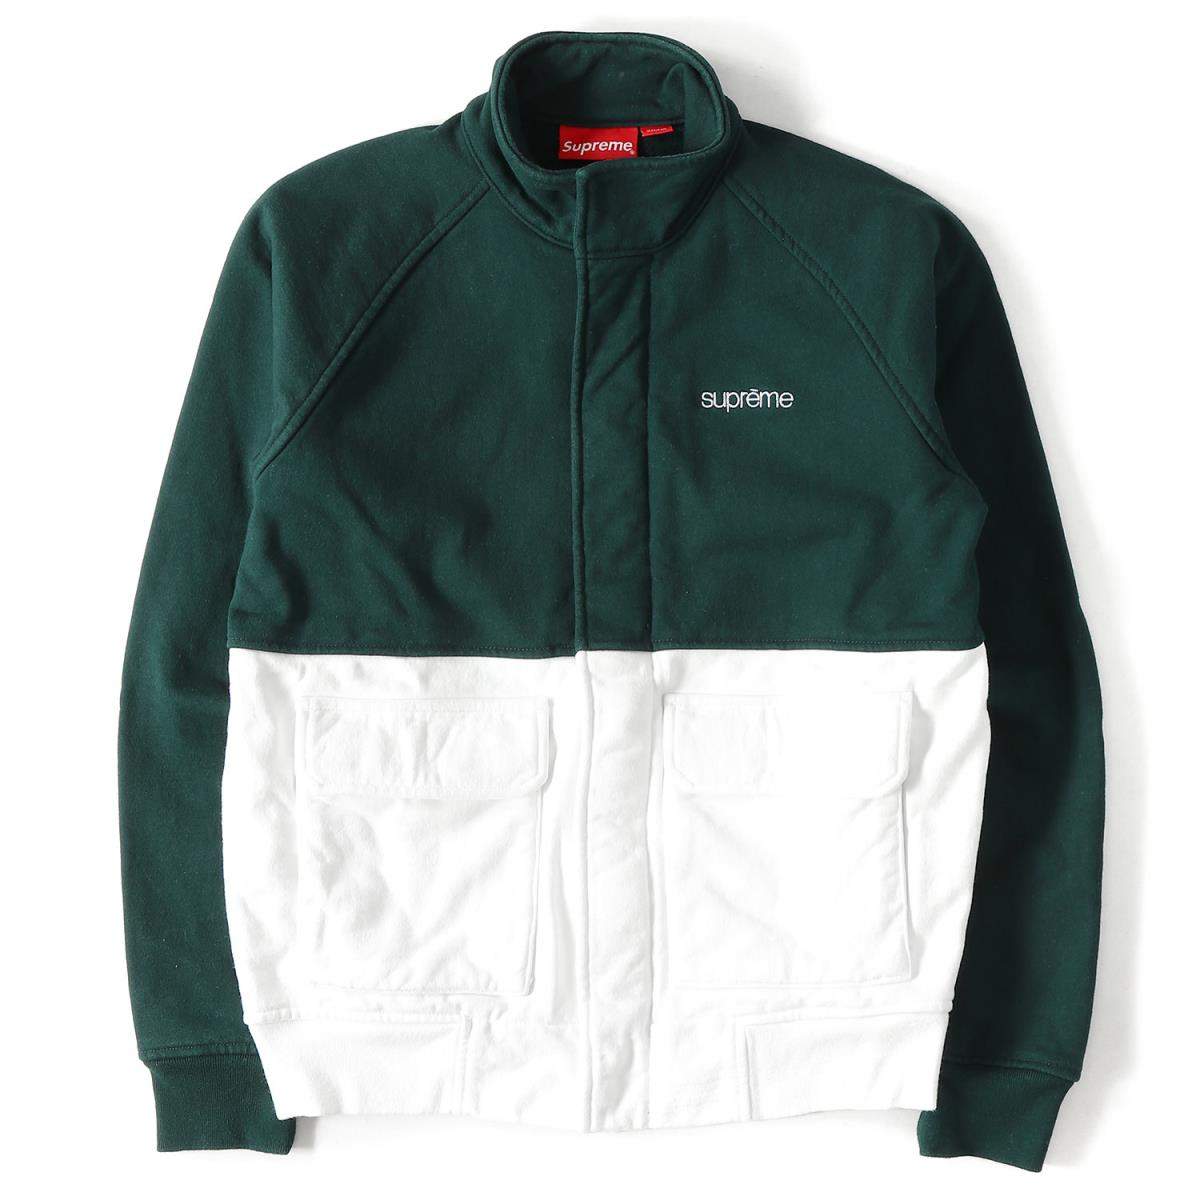 Supreme シュプリーム 14a W Classical Music Logo 2 Tone Color Sweat Shirt Jacket Fleece Warm Up Green X White S